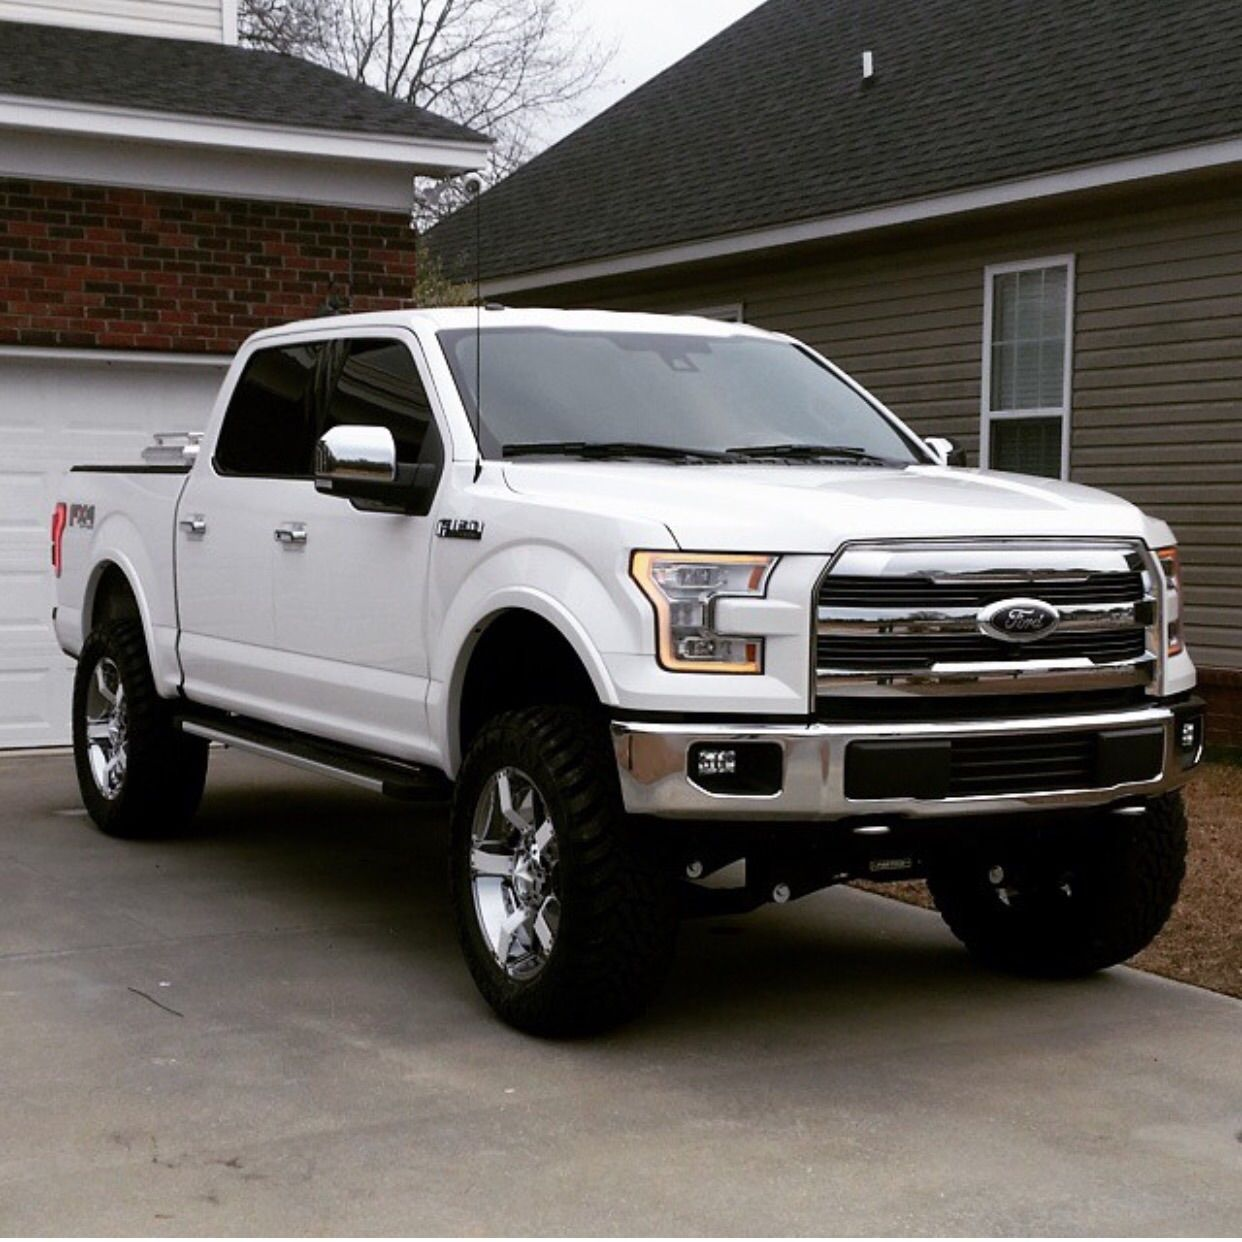 2019 Ford F 250 King Ranch: 4x4, SUV, Truck...